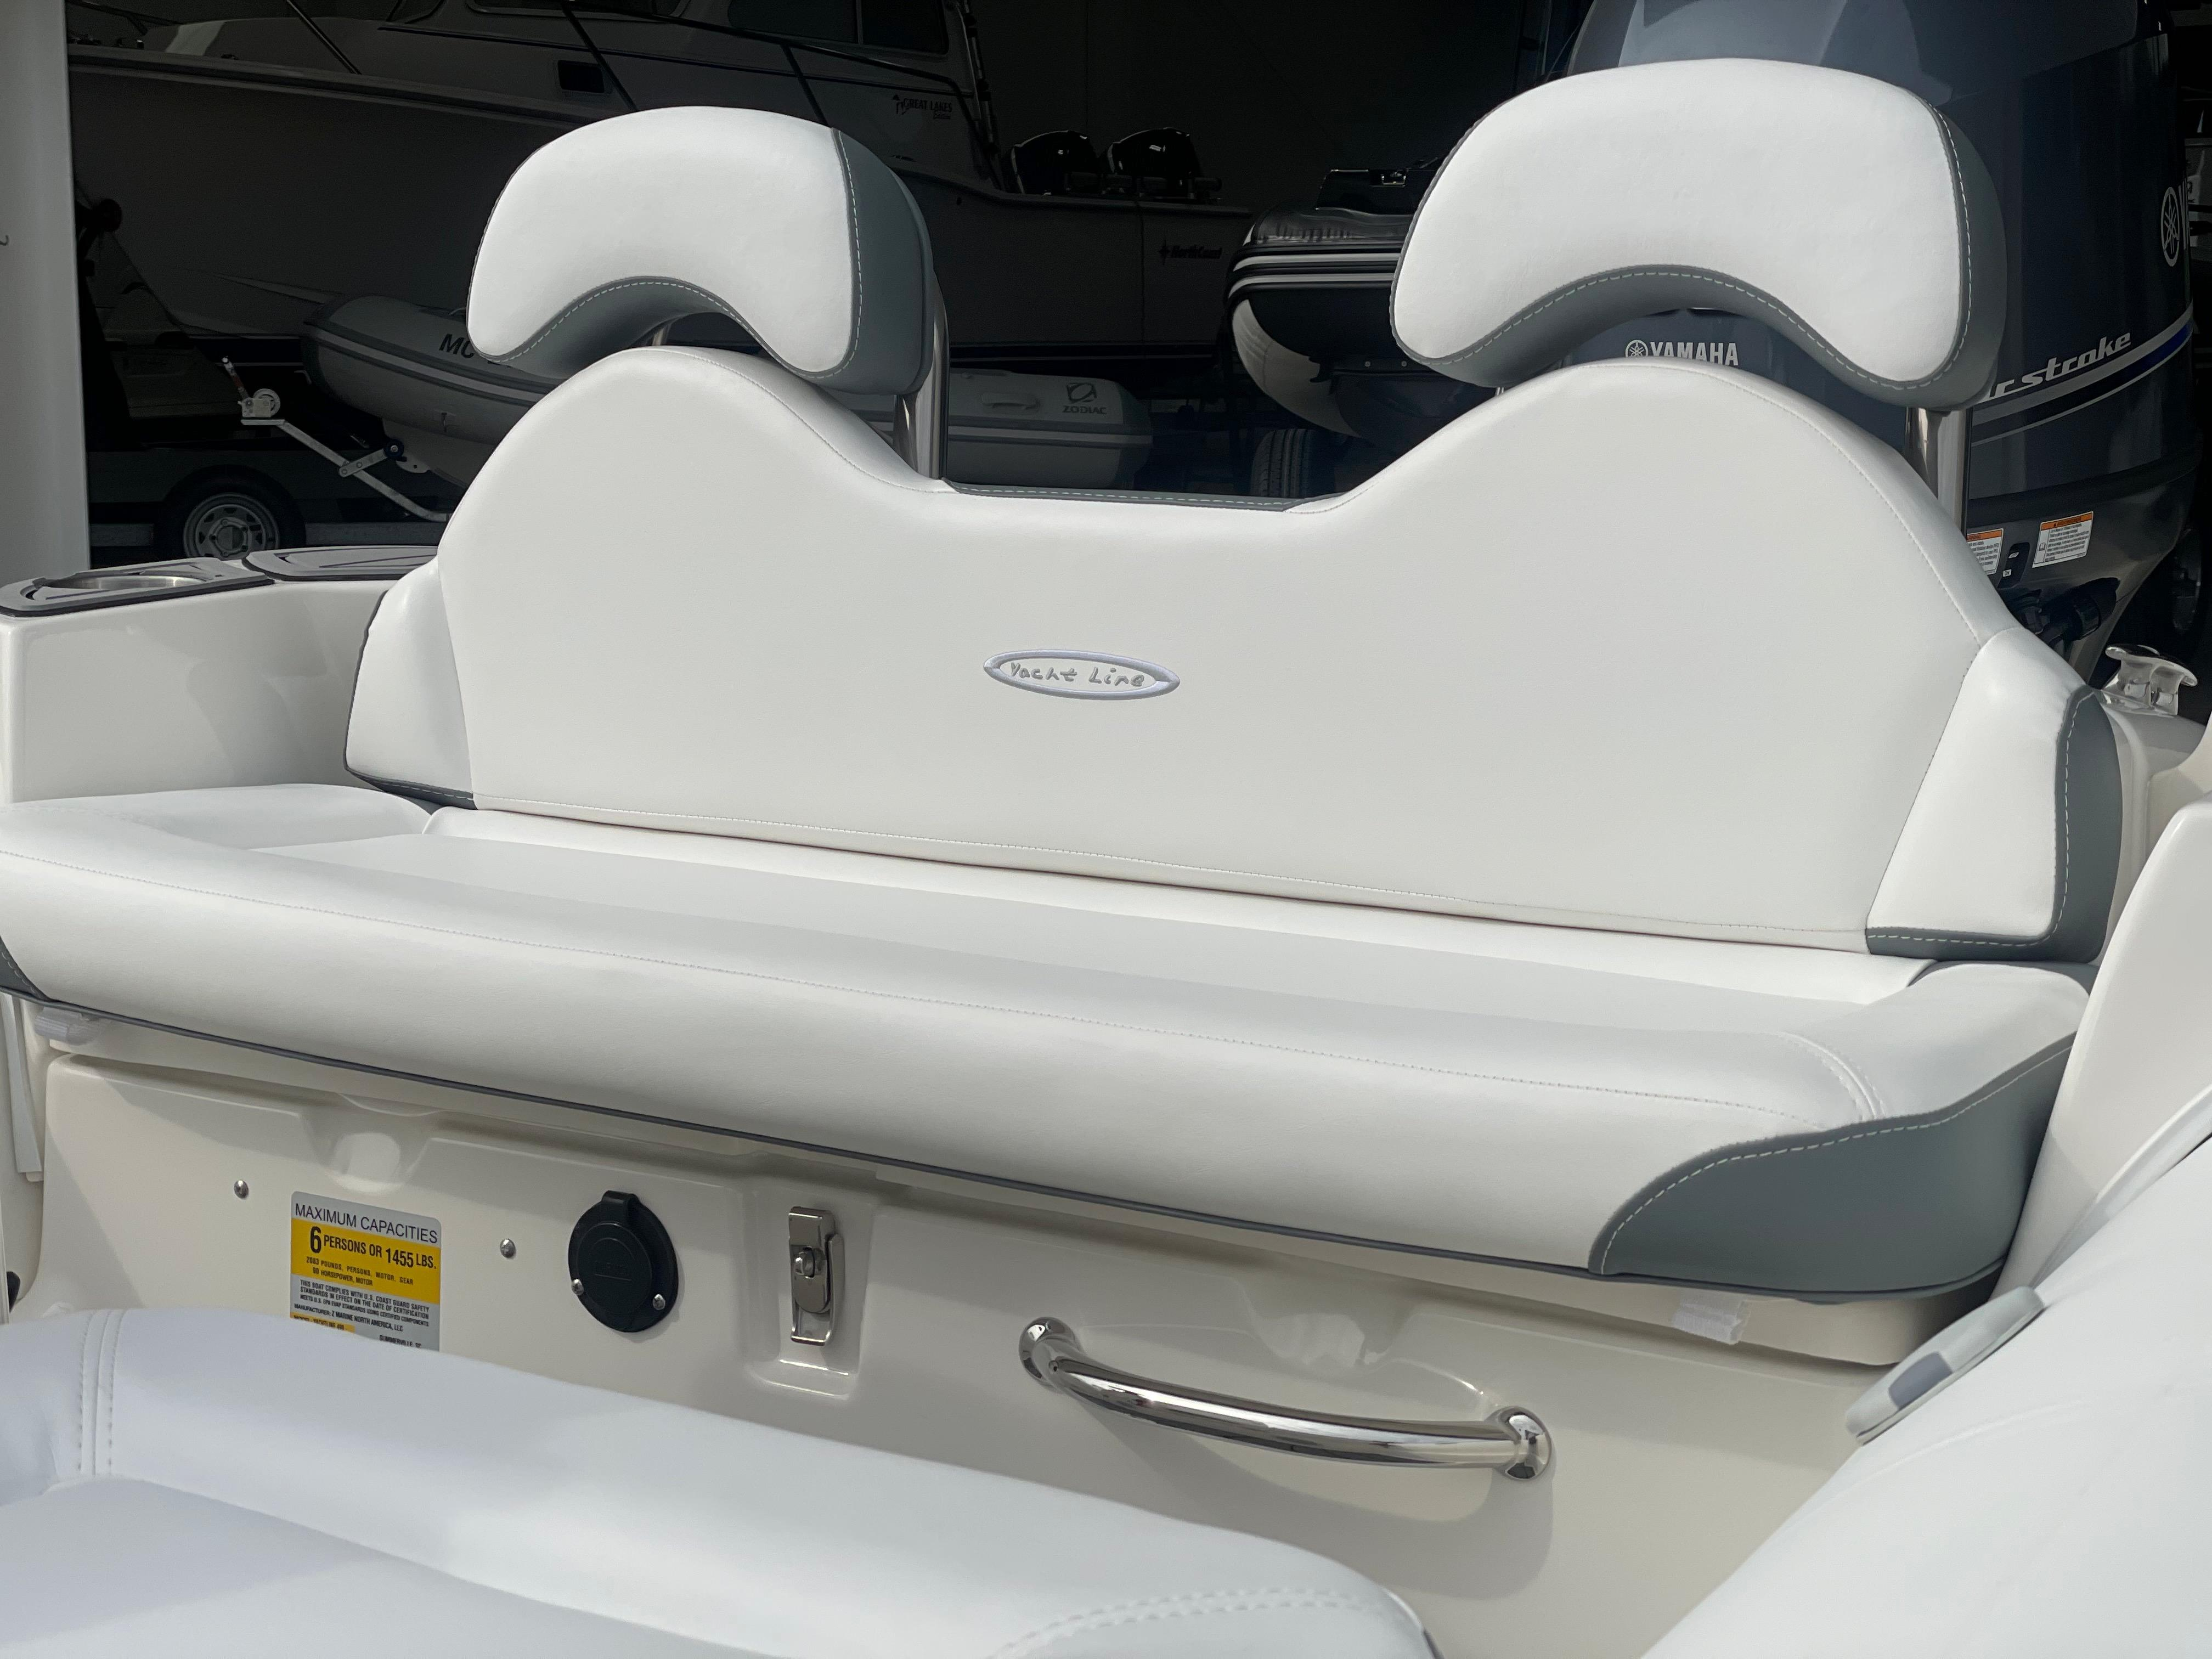 2022 Zodiac Yachtline 490 Deluxe NEO GL Edition 90hp On Order, Image 10